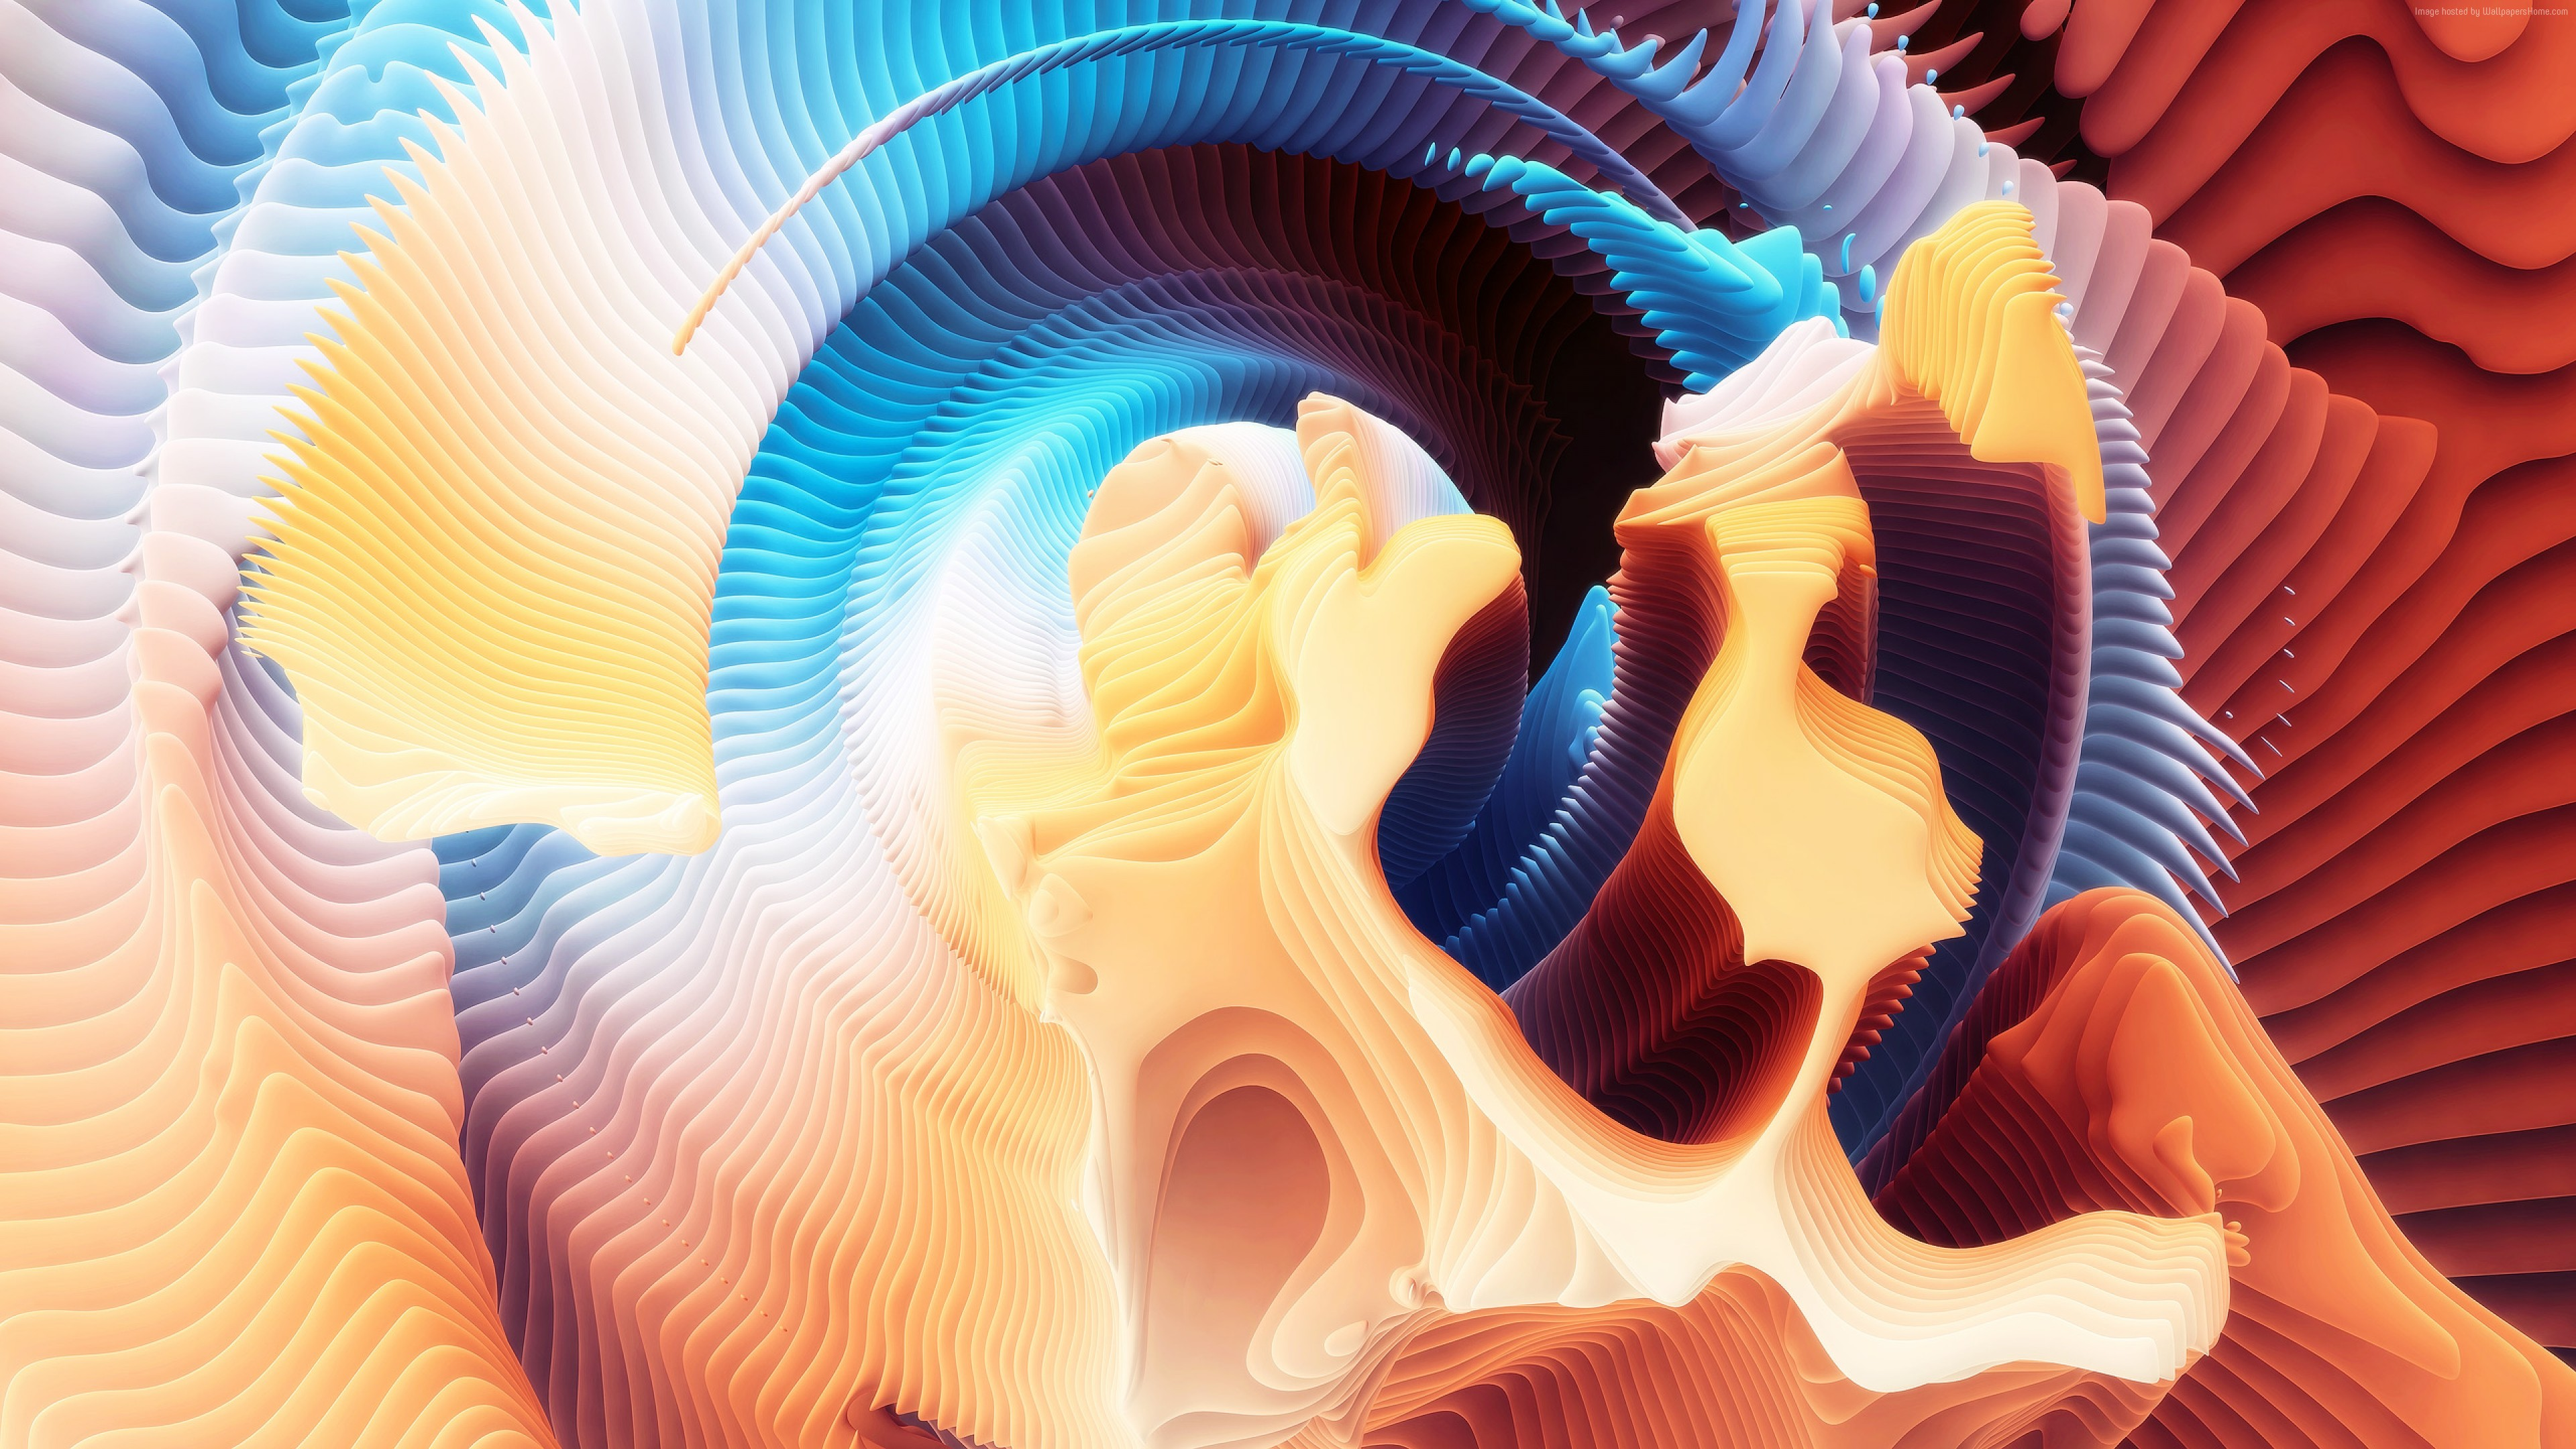 Wallpaper HD, Spirals, abstract, Abstract